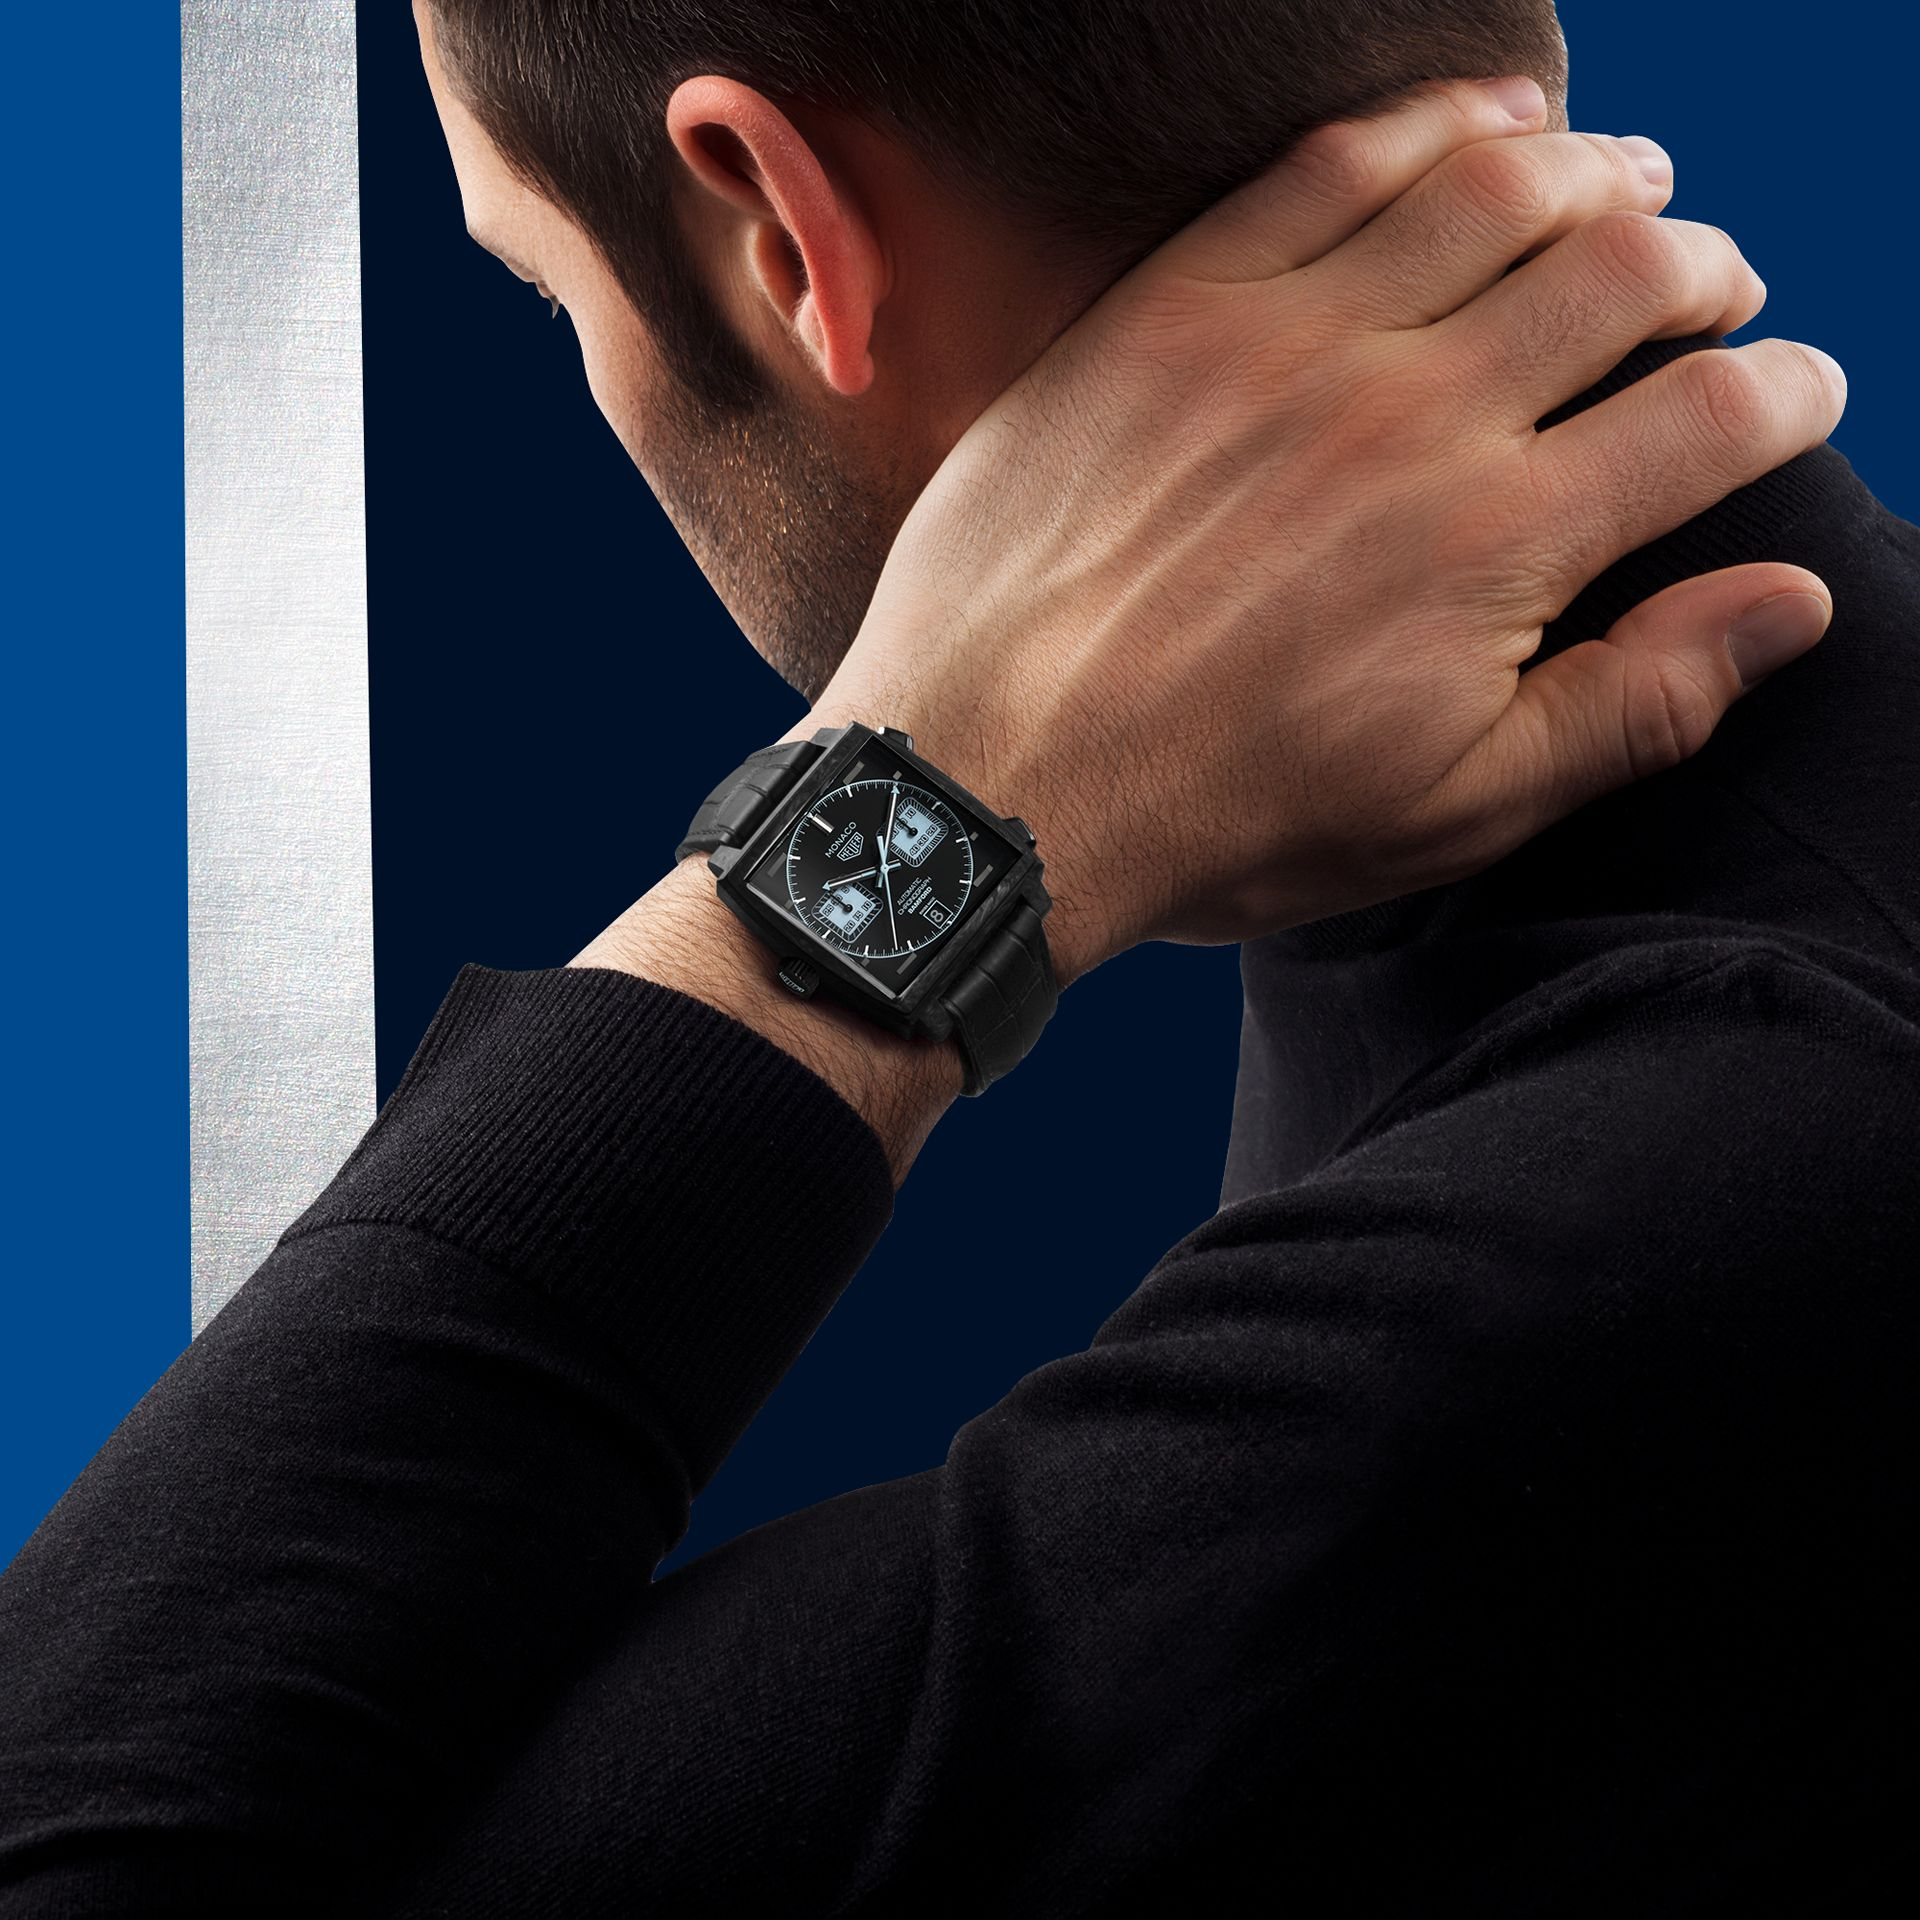 The Watch For The Contemporary Edgy Spirit